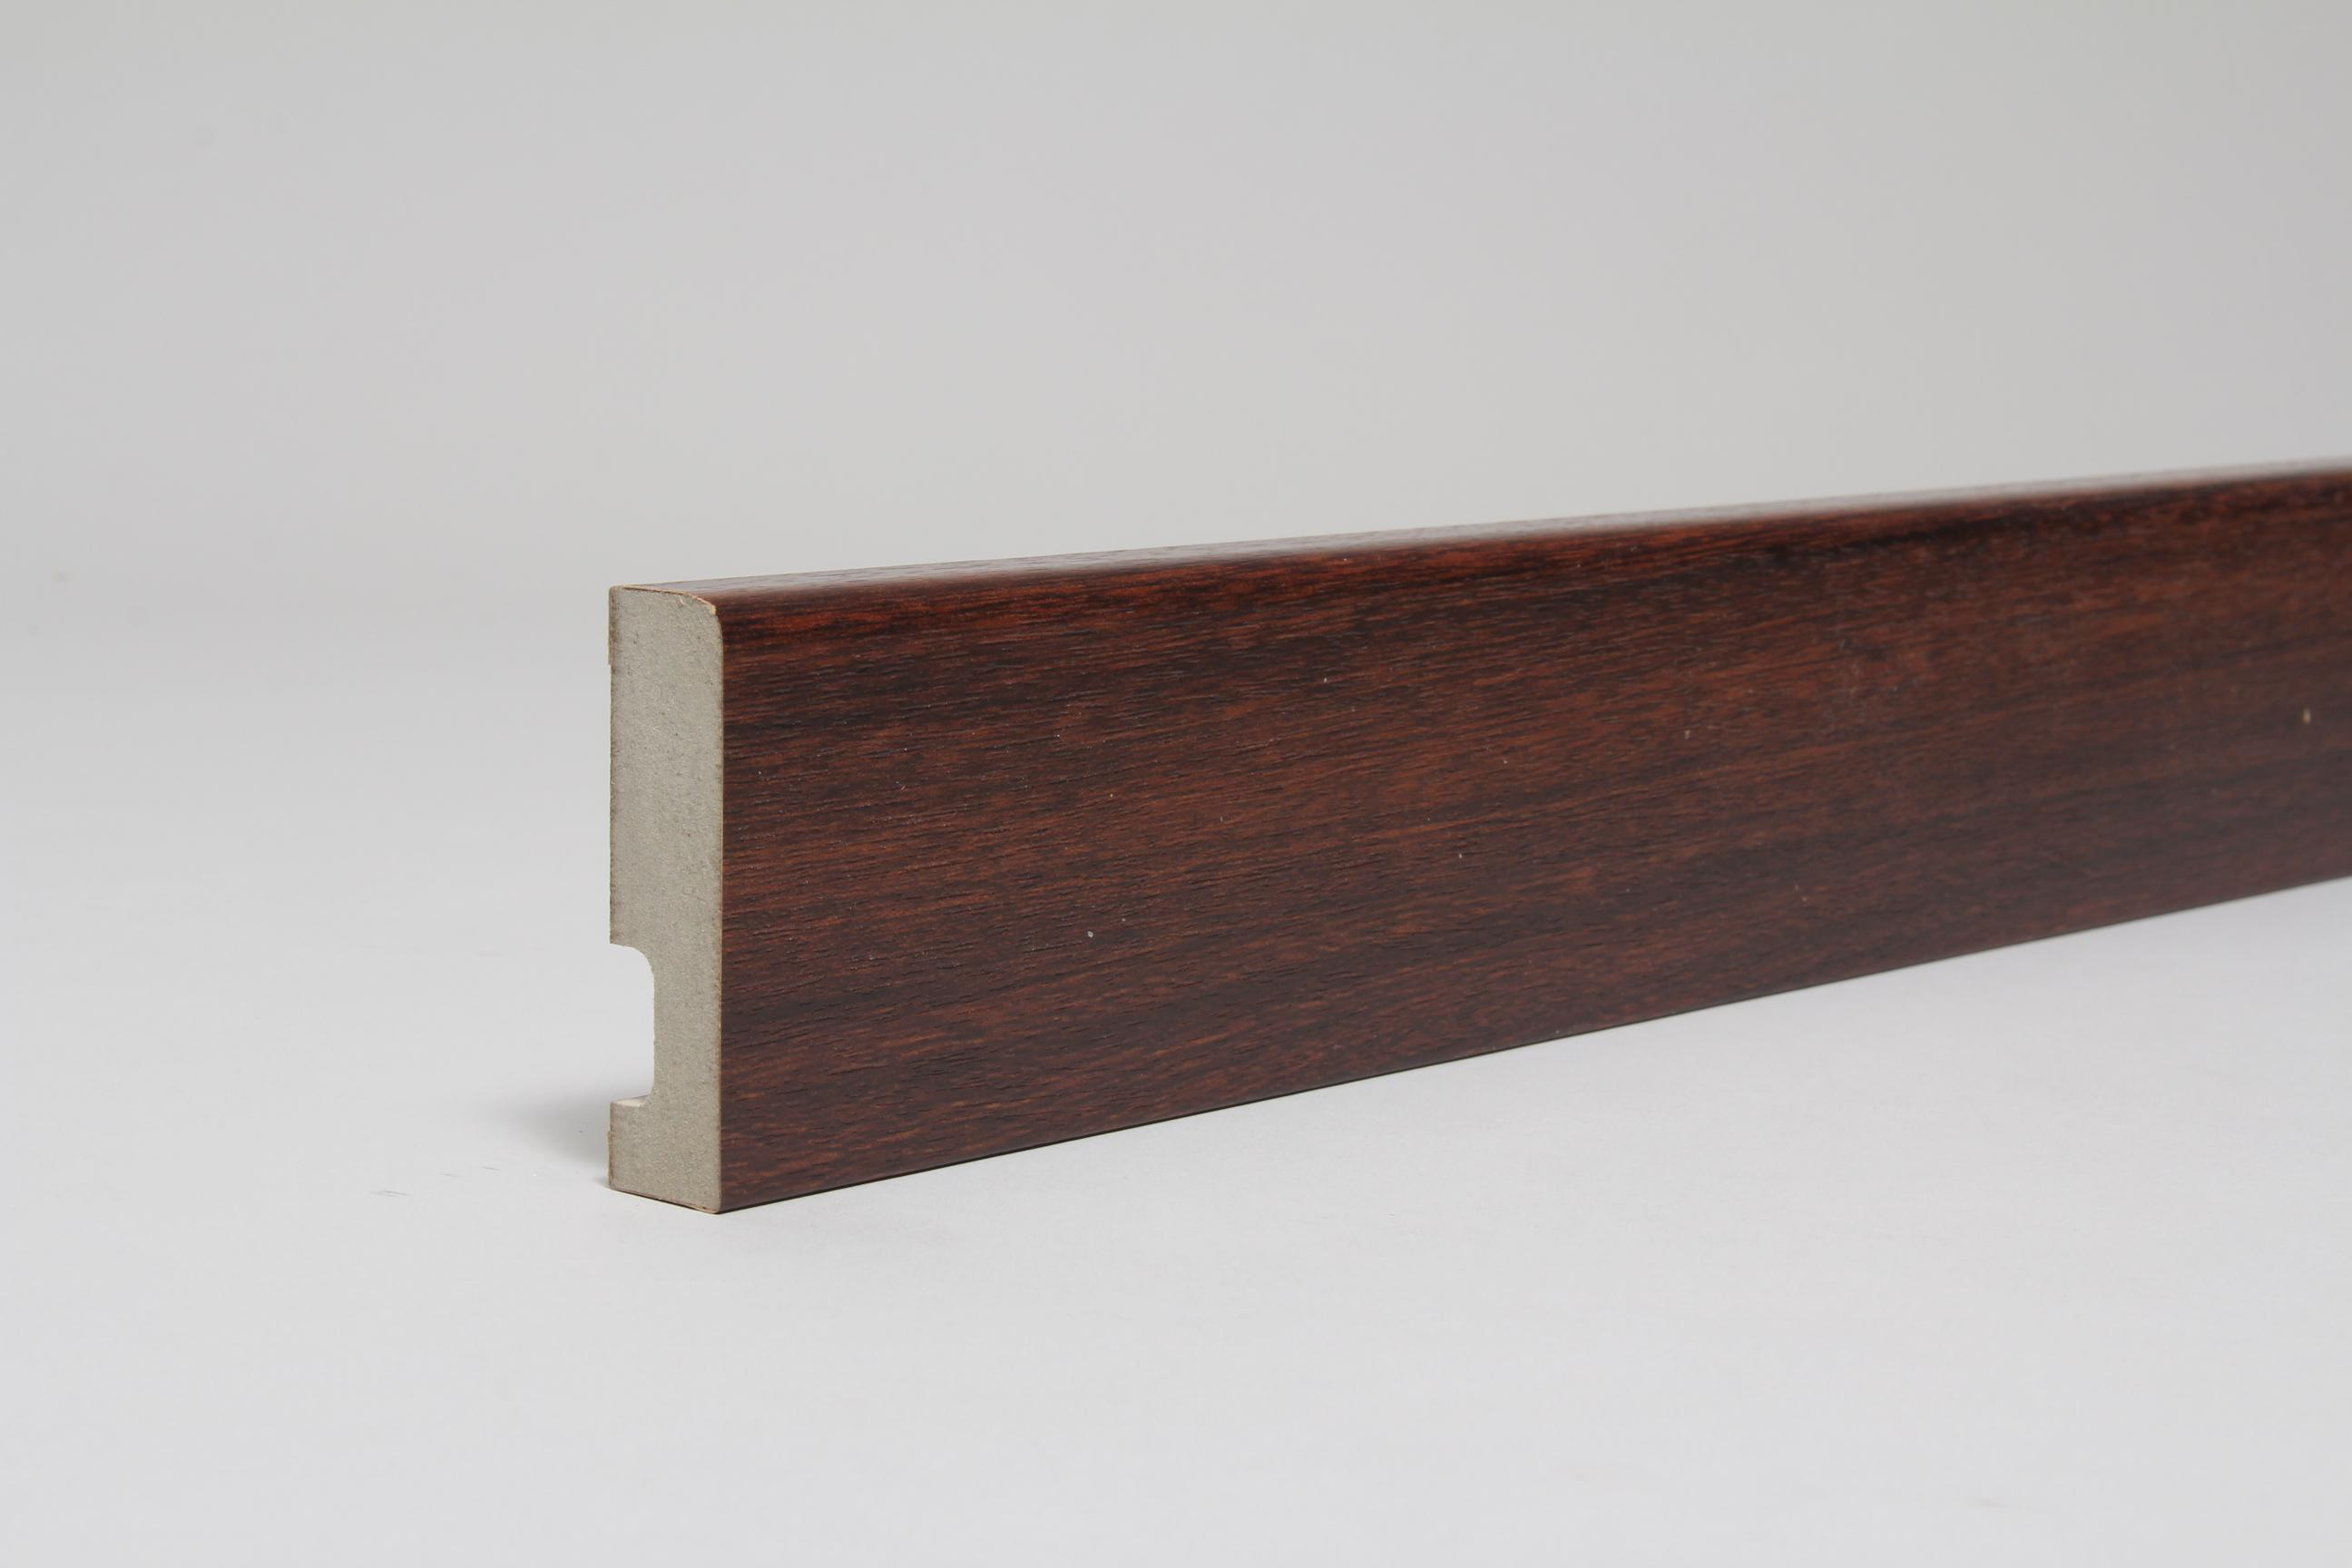 Rounded One Edge 18 x 68 x 4.4 Mtr Mahogany Fully Finished Foil Wrapped  (Special Offer)